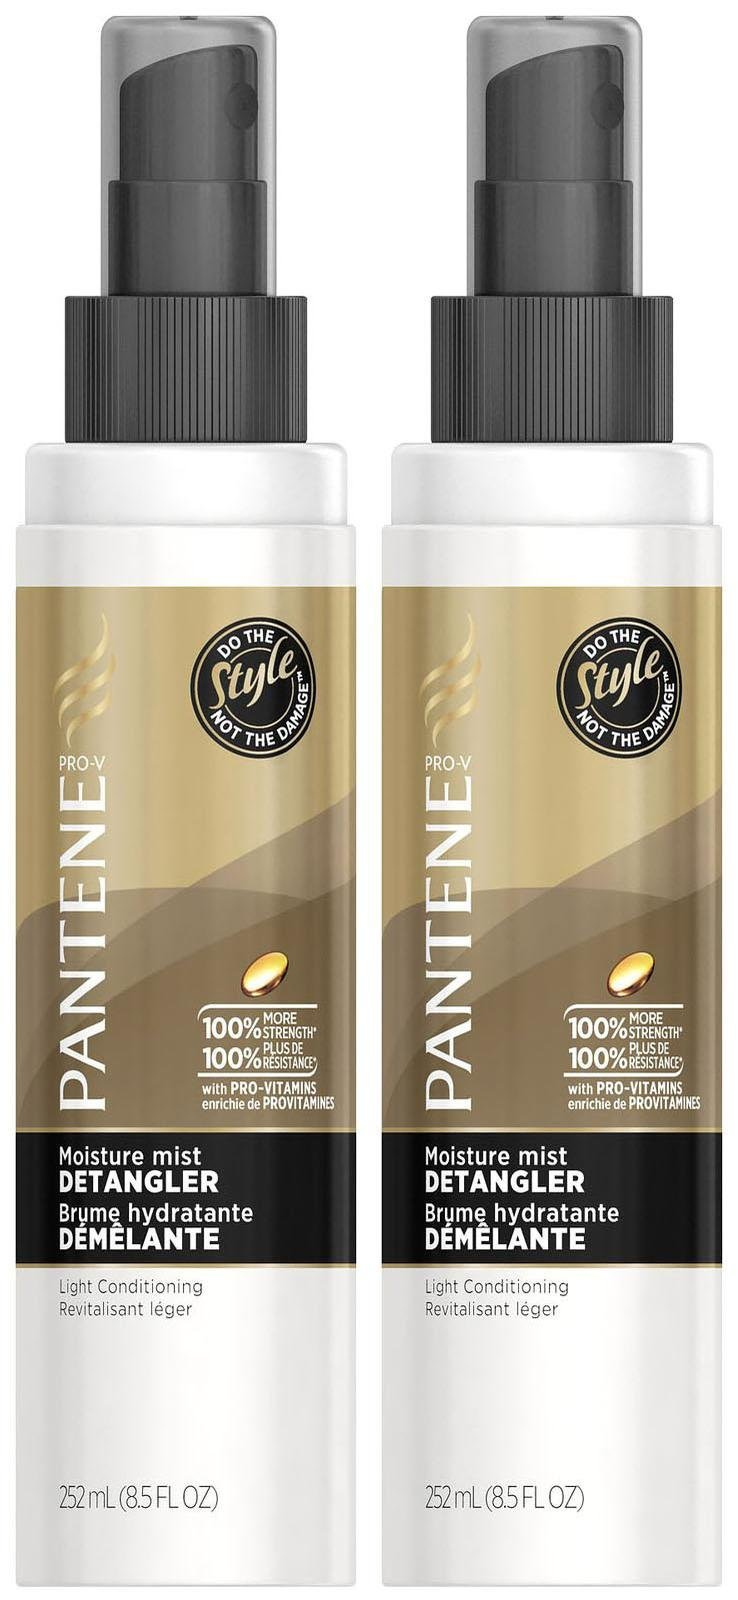 Pantene Pro-V Moisture Mist Detangler Light Conditioning - 8.5 oz - 2 Pack